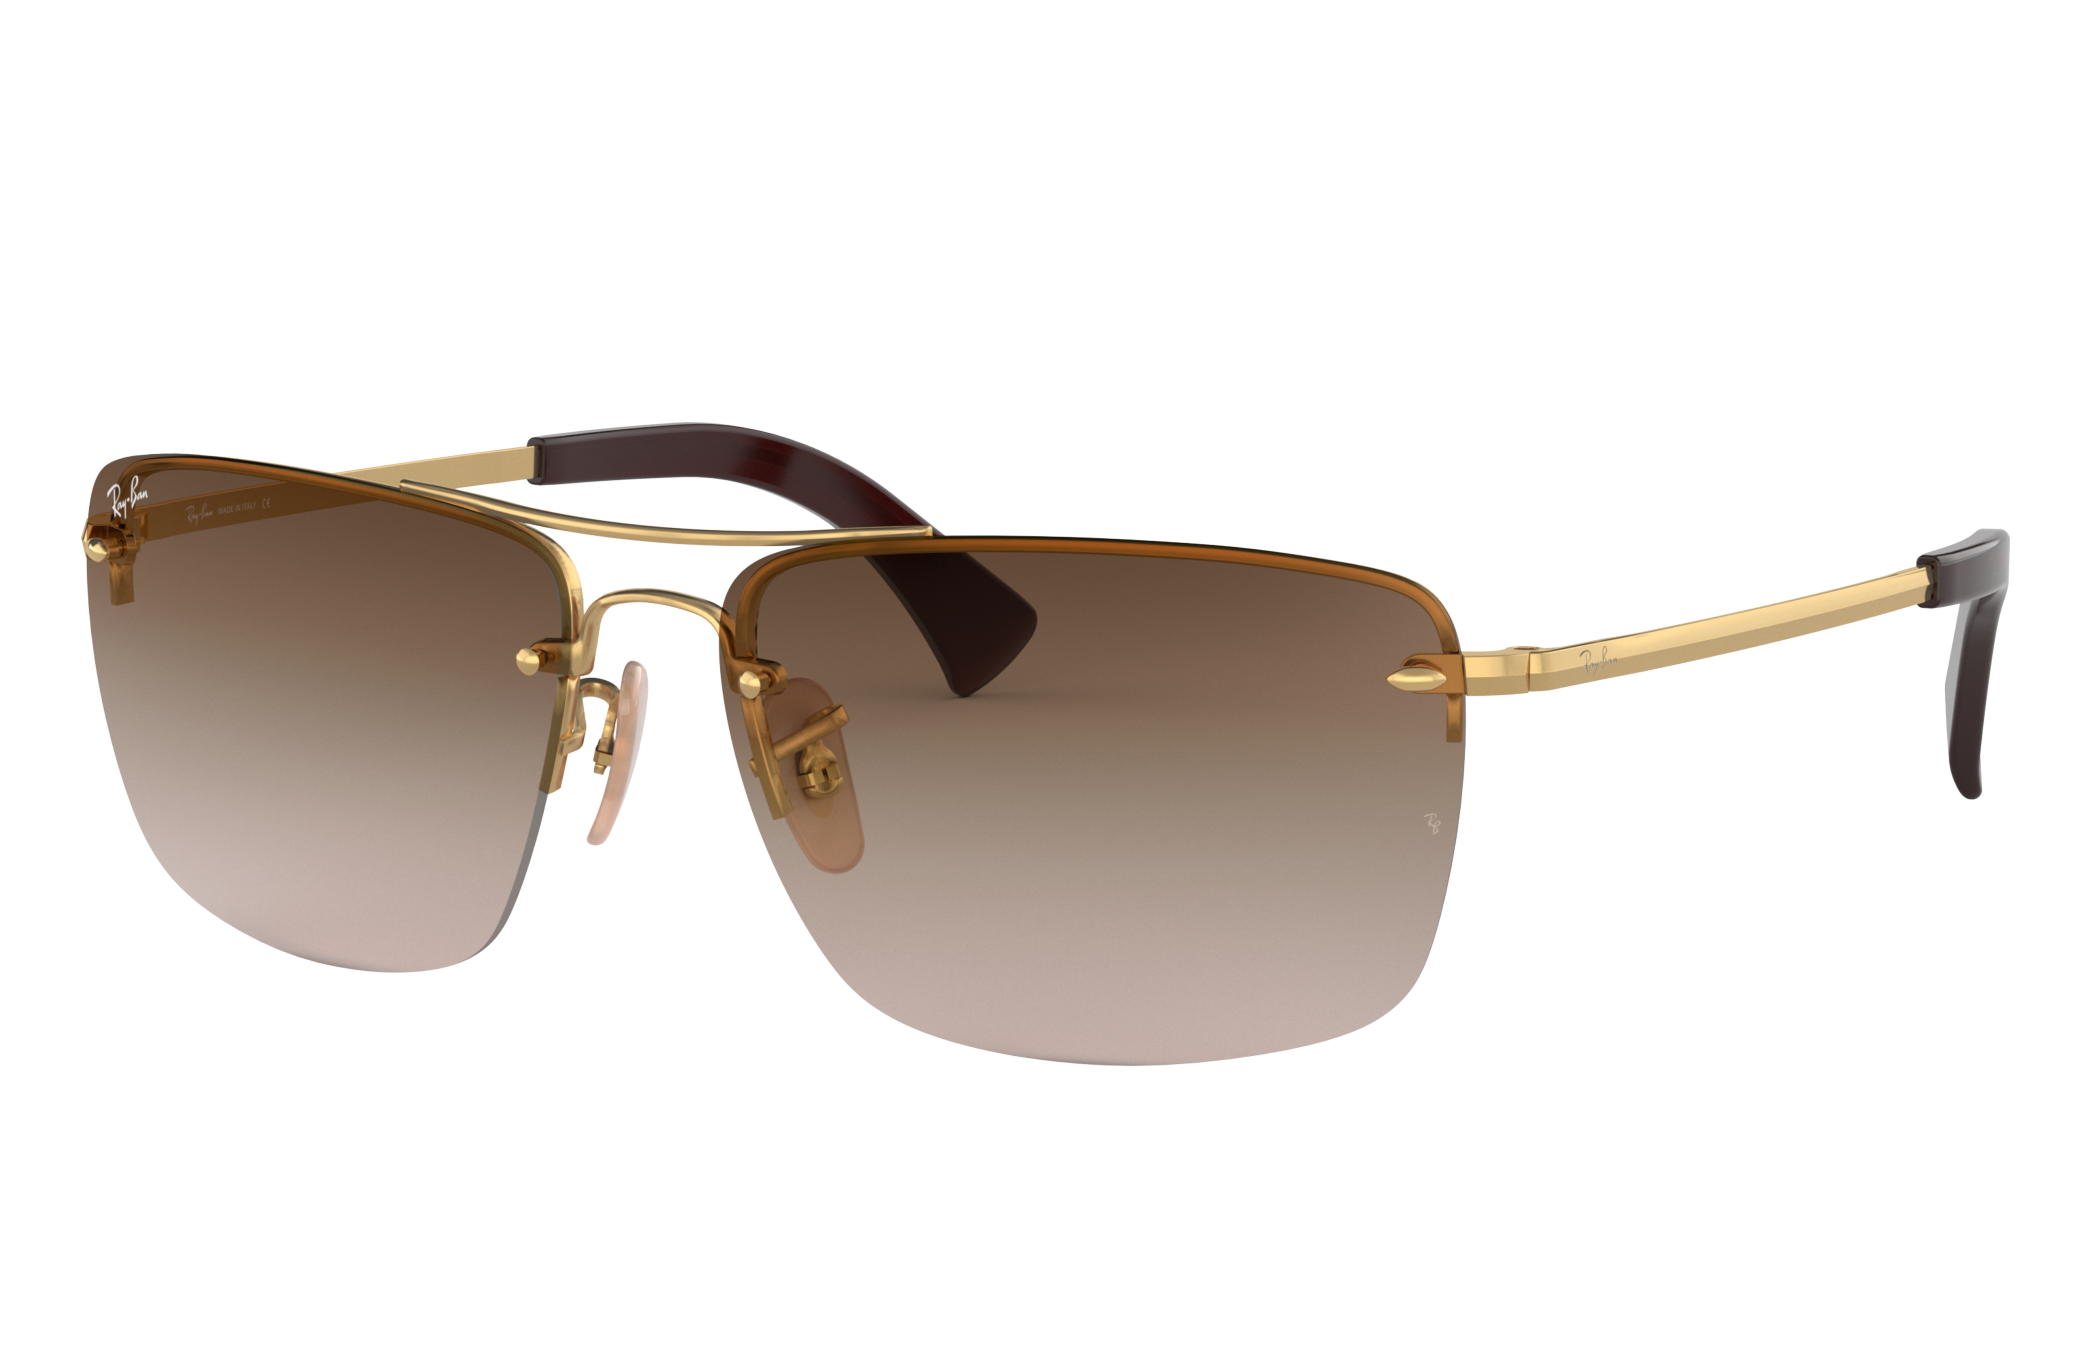 Ray-Ban Rb3607 Gold, Brown Lenses - RB3607